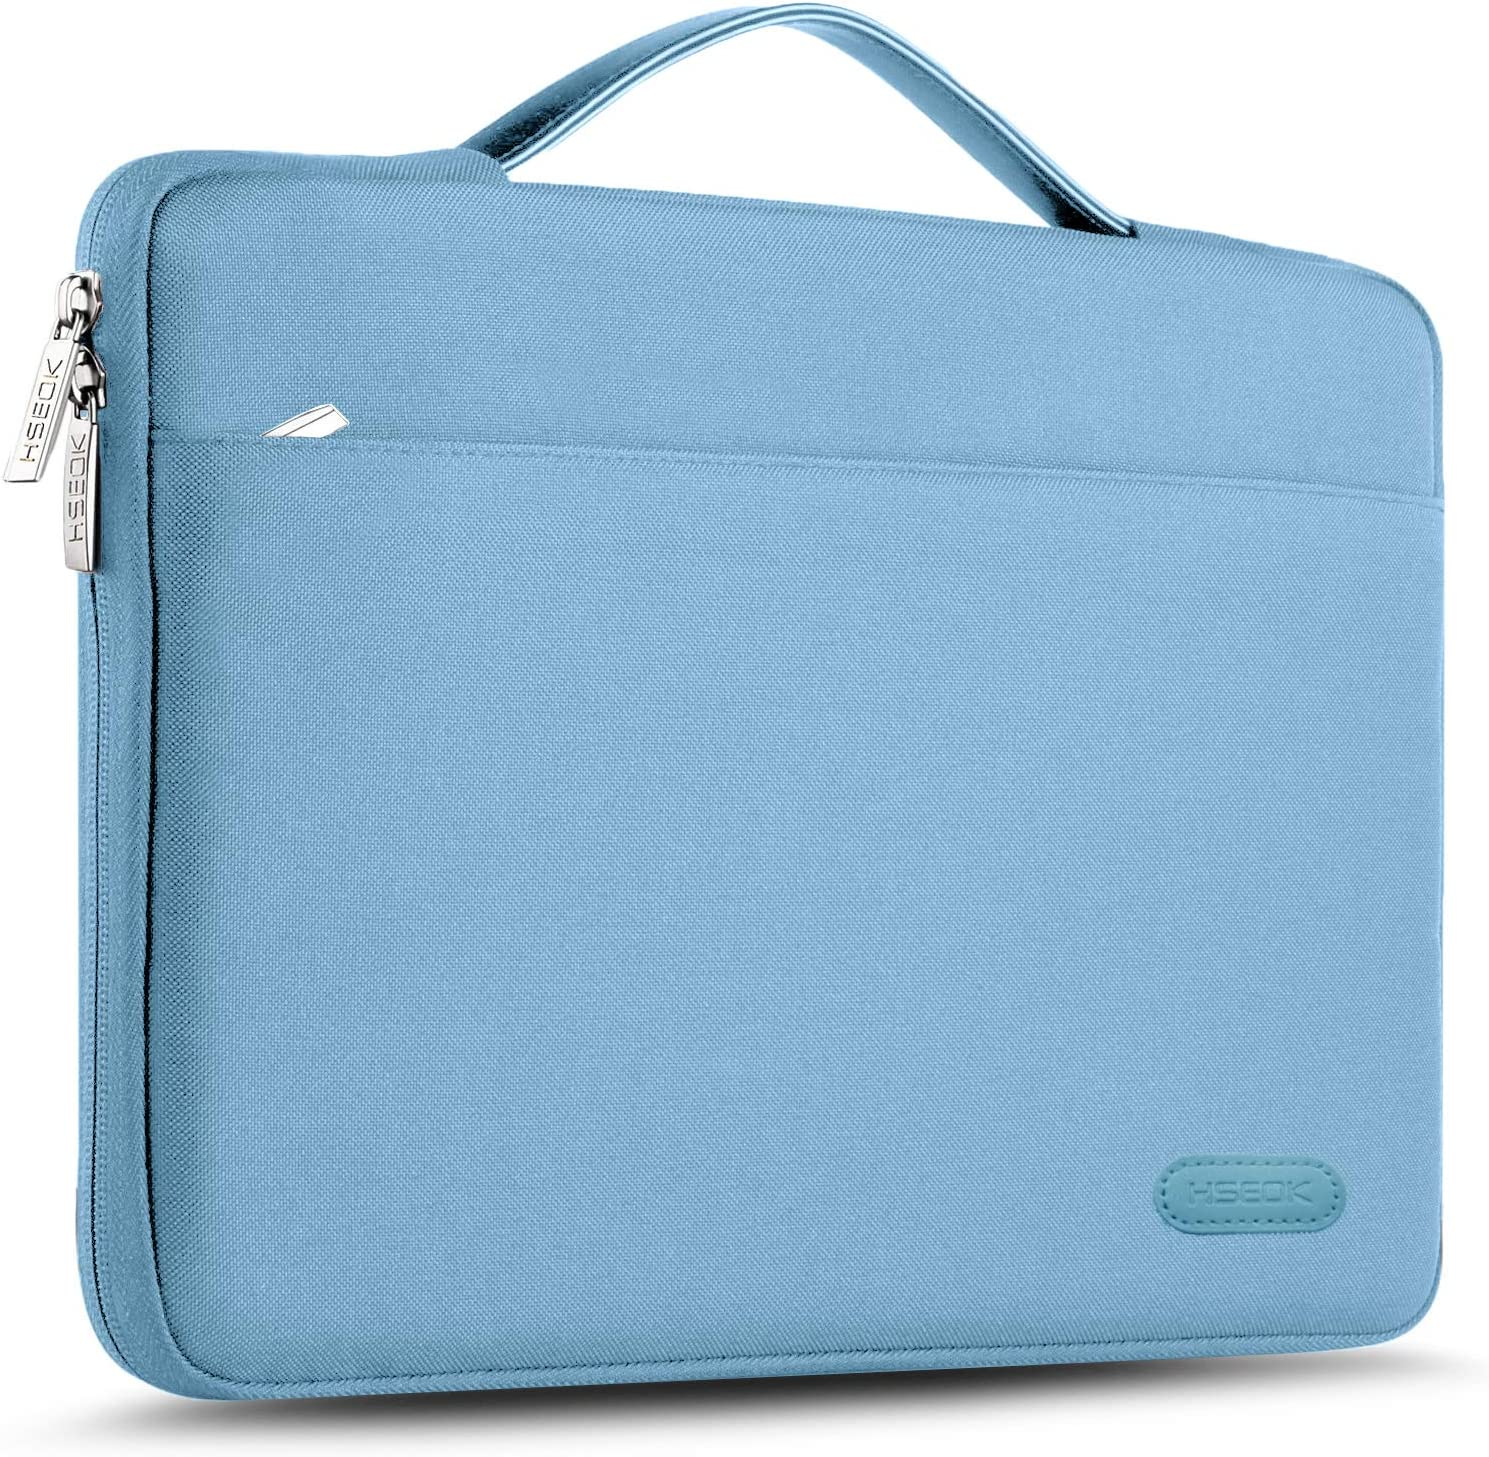 """Hseok Laptop Sleeve 13-13.5 Inch Case Briefcase, Compatible All Model of 13.3 Inch MacBook Air/Pro, XPS 13, Surface Book 13.5"""" Spill-Resistant Handbag for Most Popular 13""""-13.5"""" Notebooks, Light Blue"""